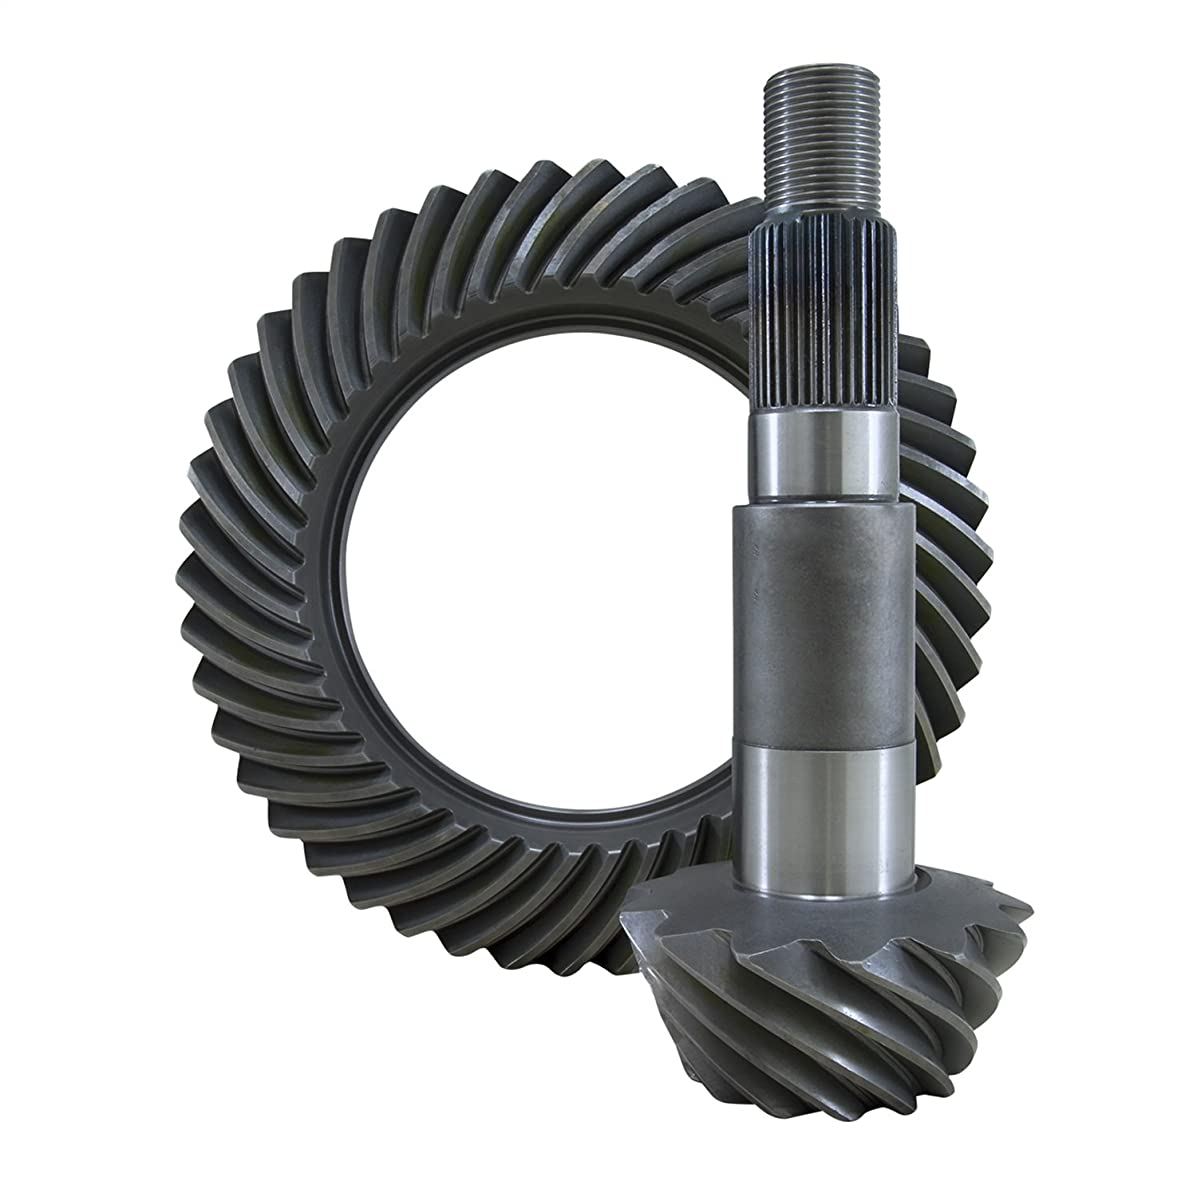 Yukon Gear & Axle (YG D80-488) High Performance Ring & Pinion Gear Set for Dana 80 Differential